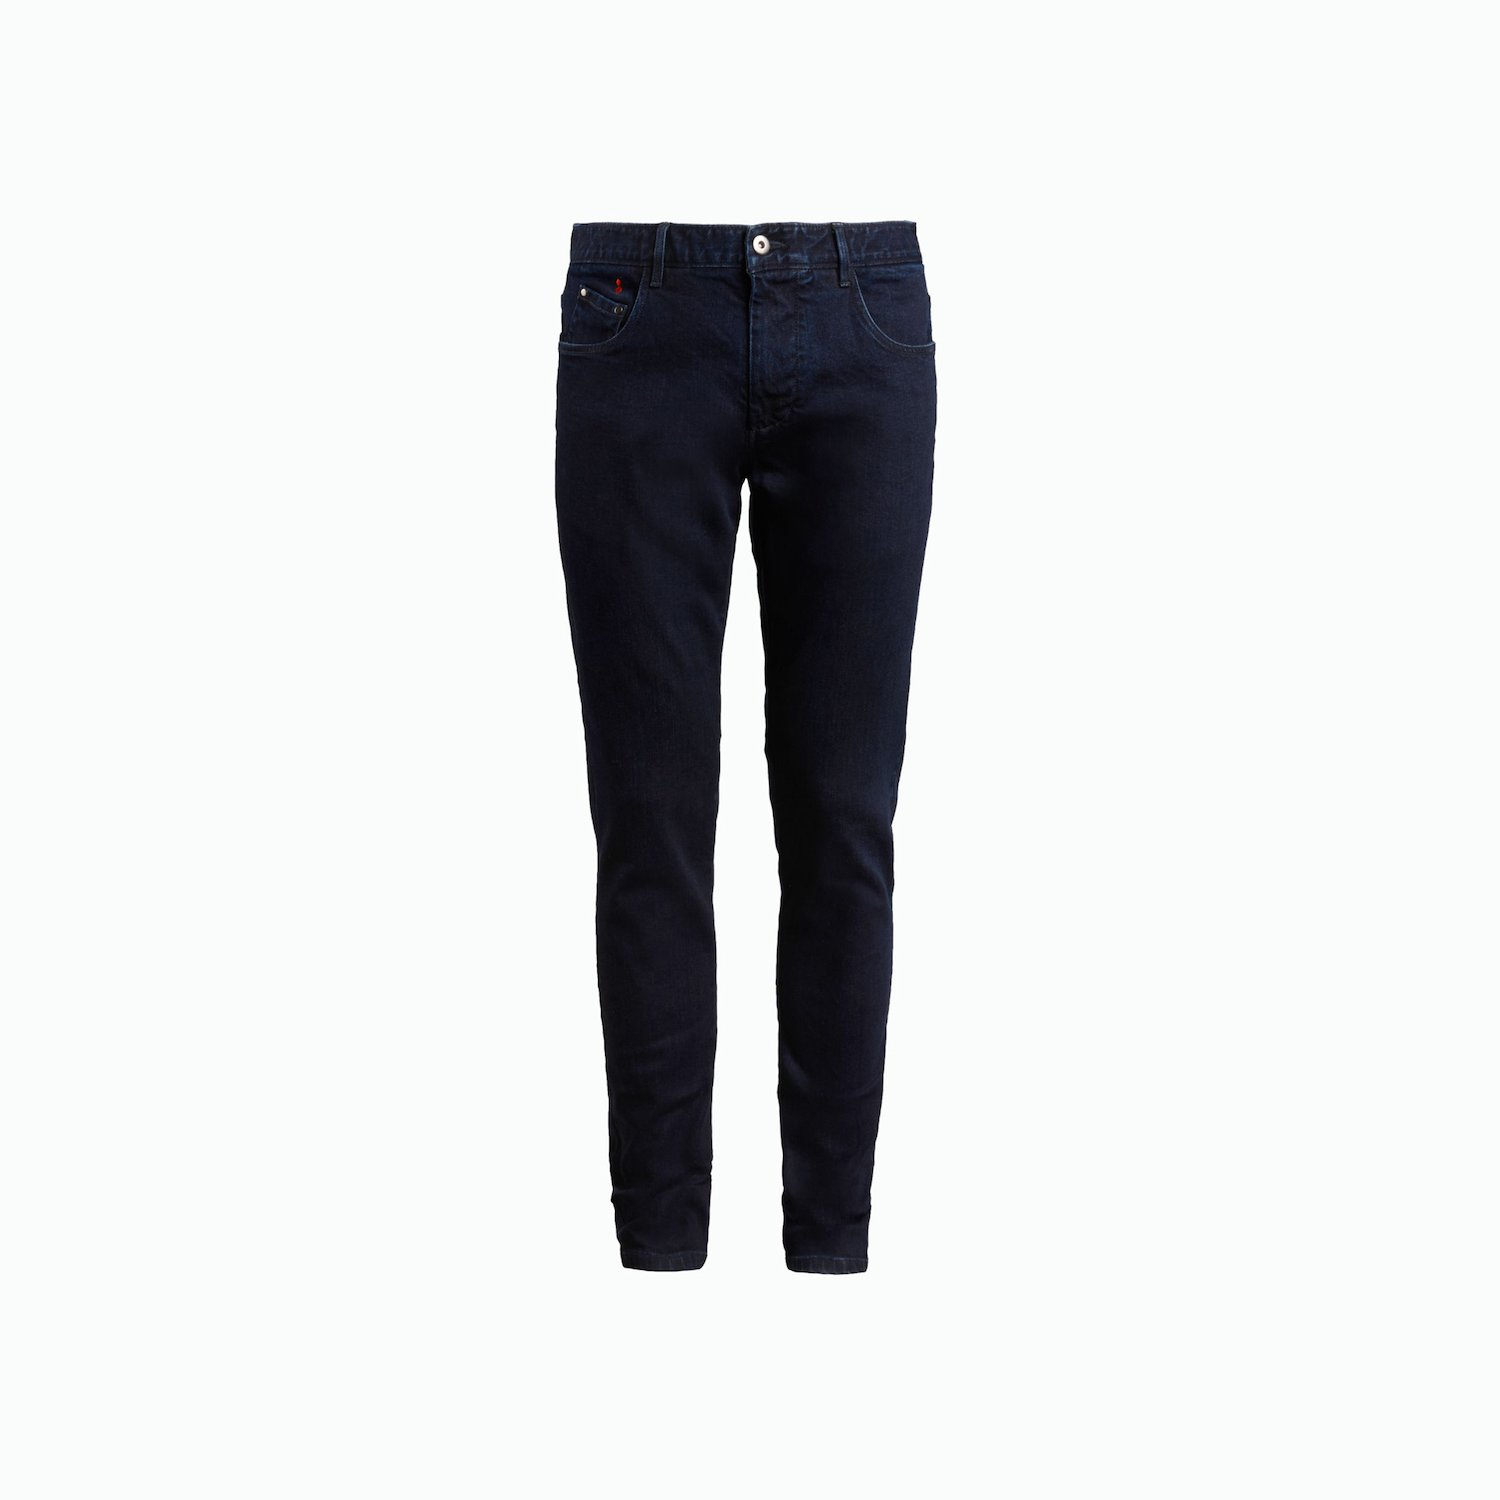 Pantalón B11 - Dark denim